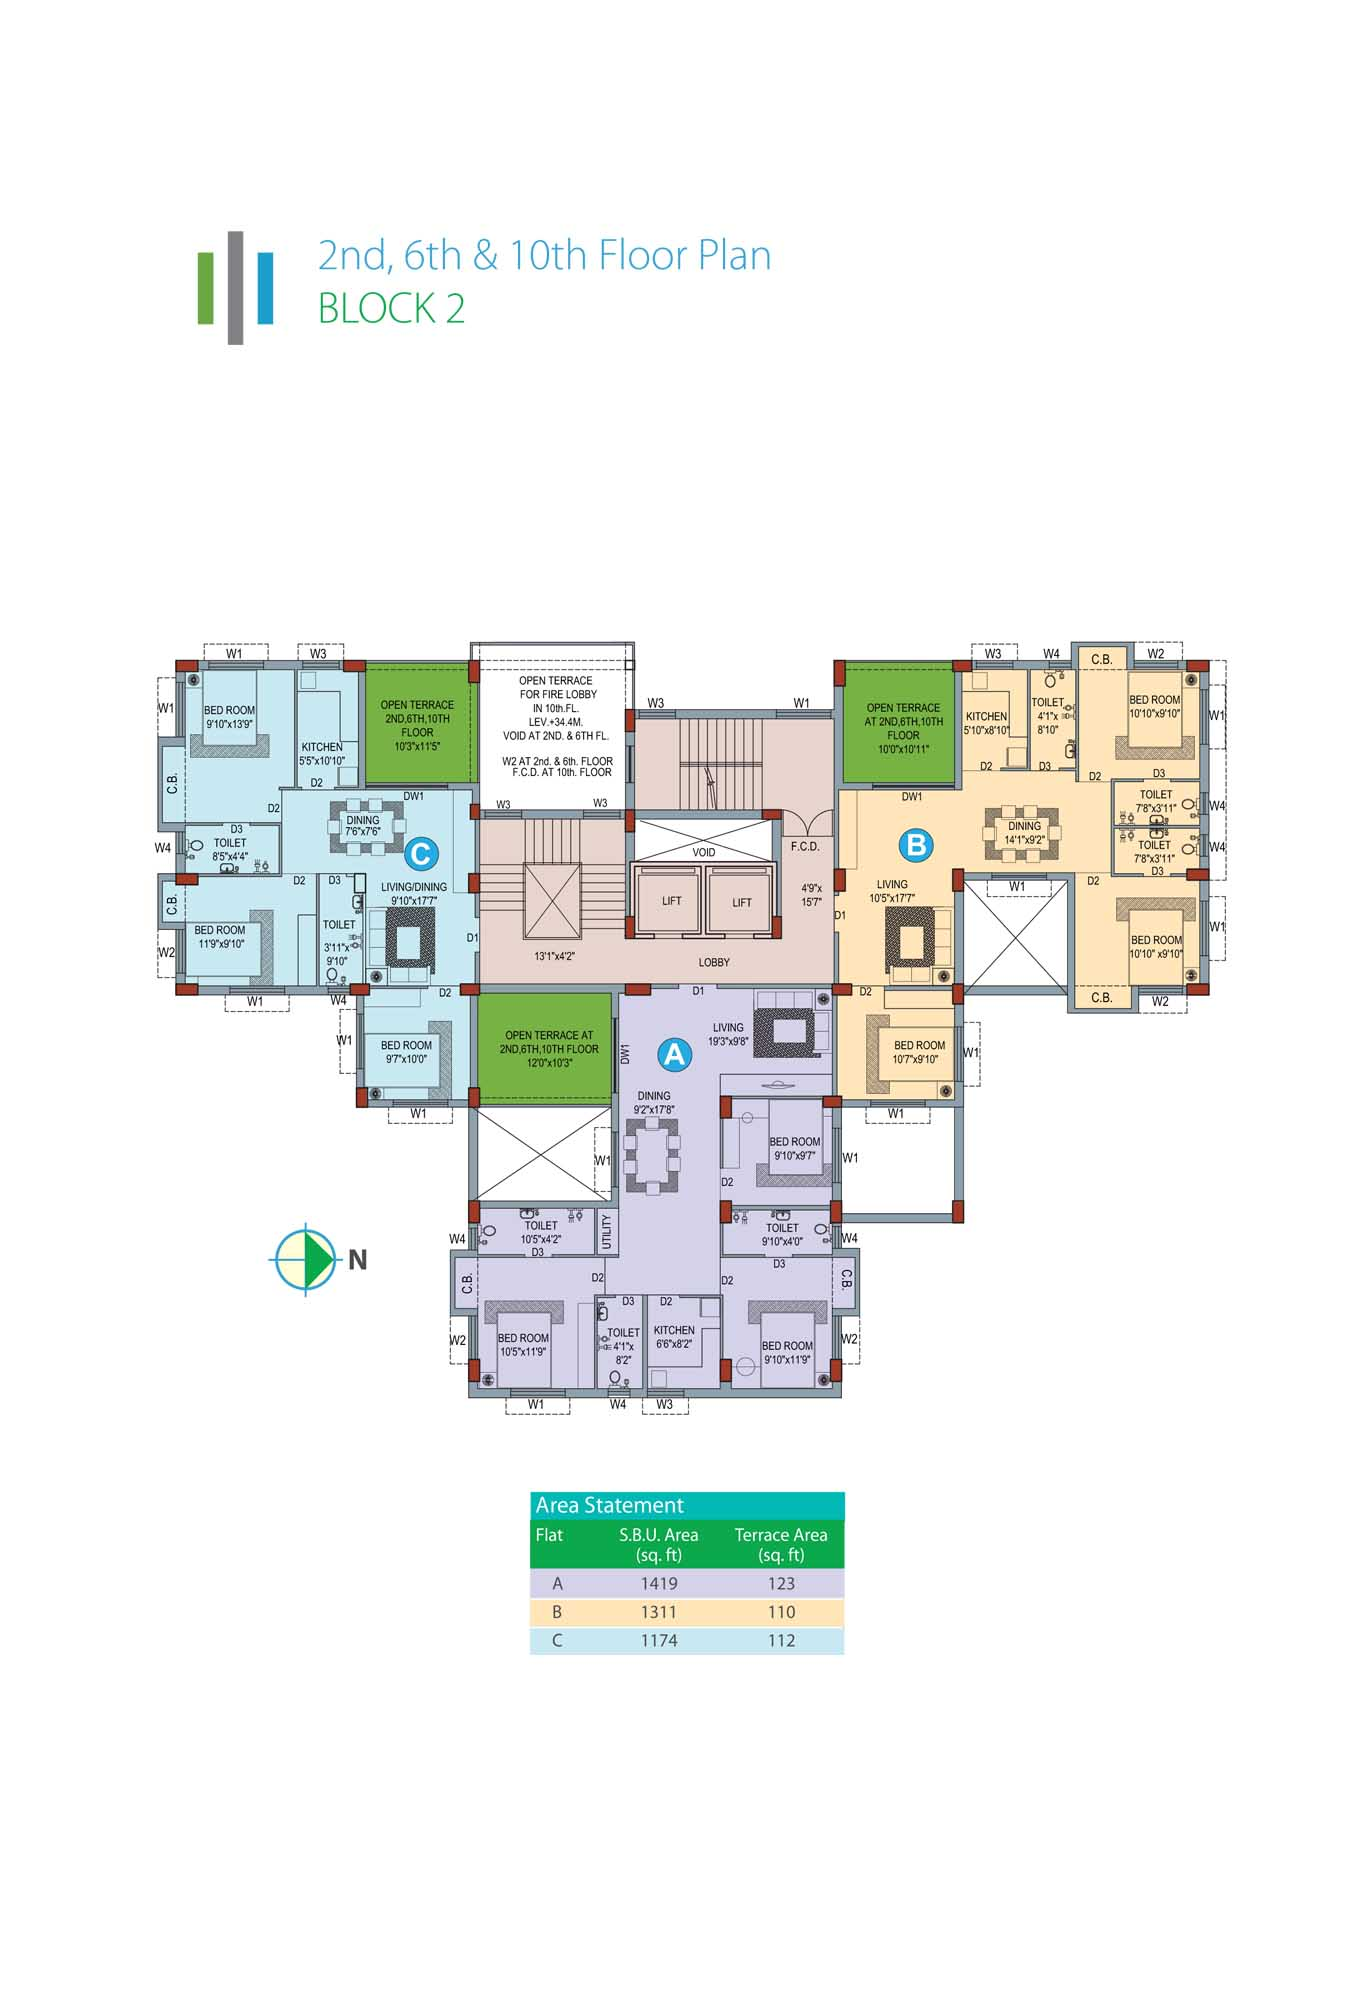 Eden Sky Terraces - Block 2 2nd, 6th & 10th Floor Plan